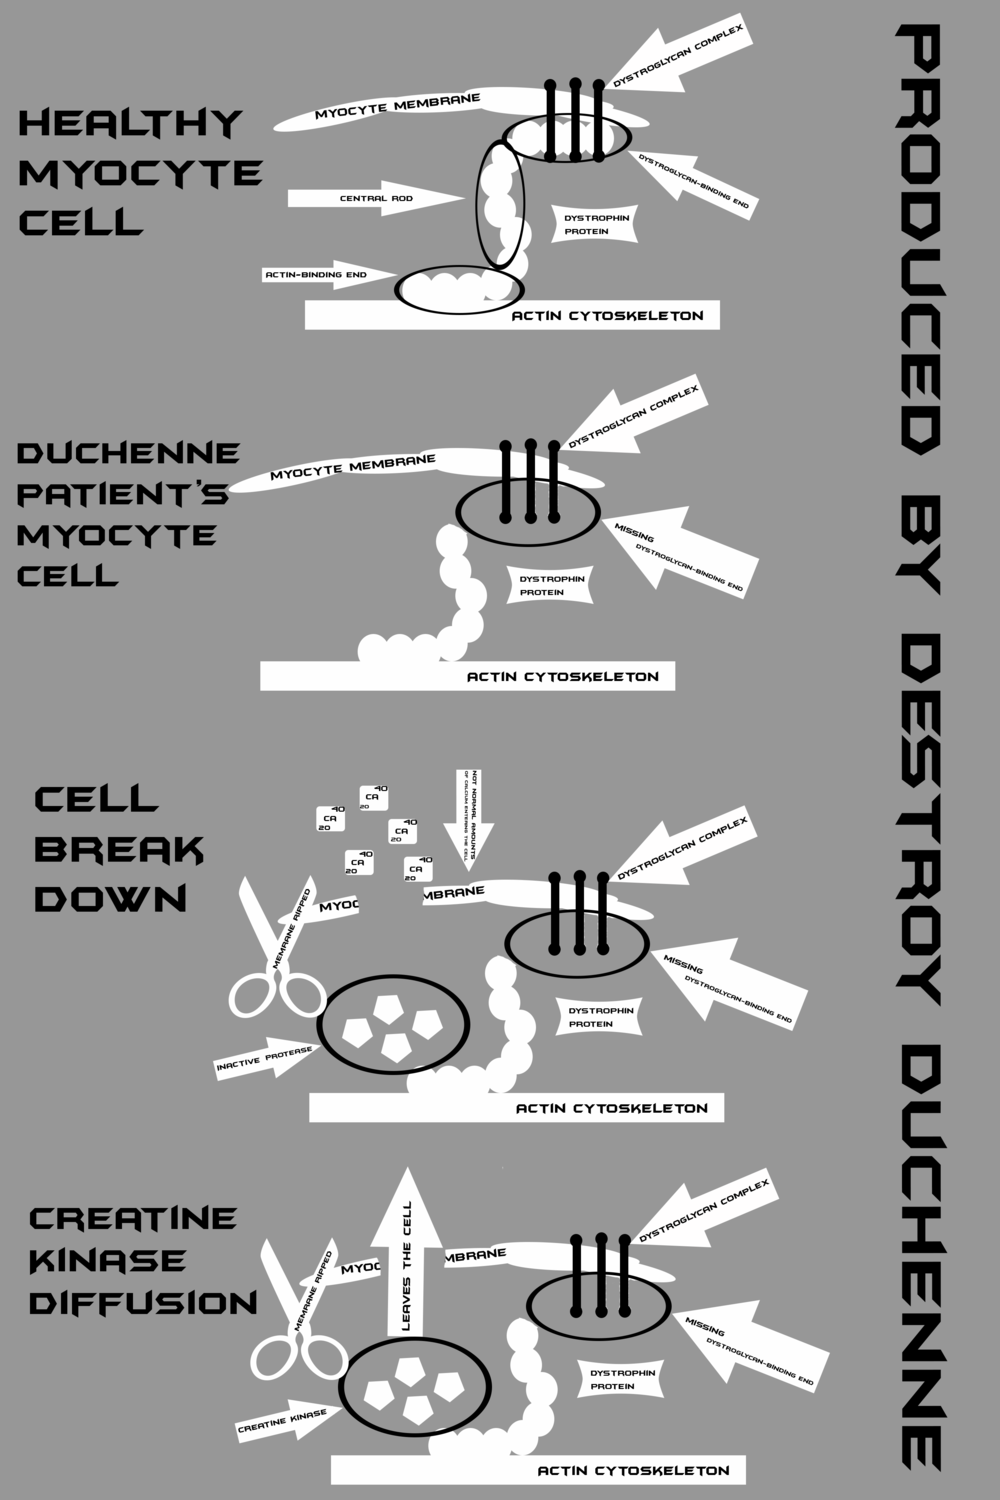 Duchenne explained in great detail.png